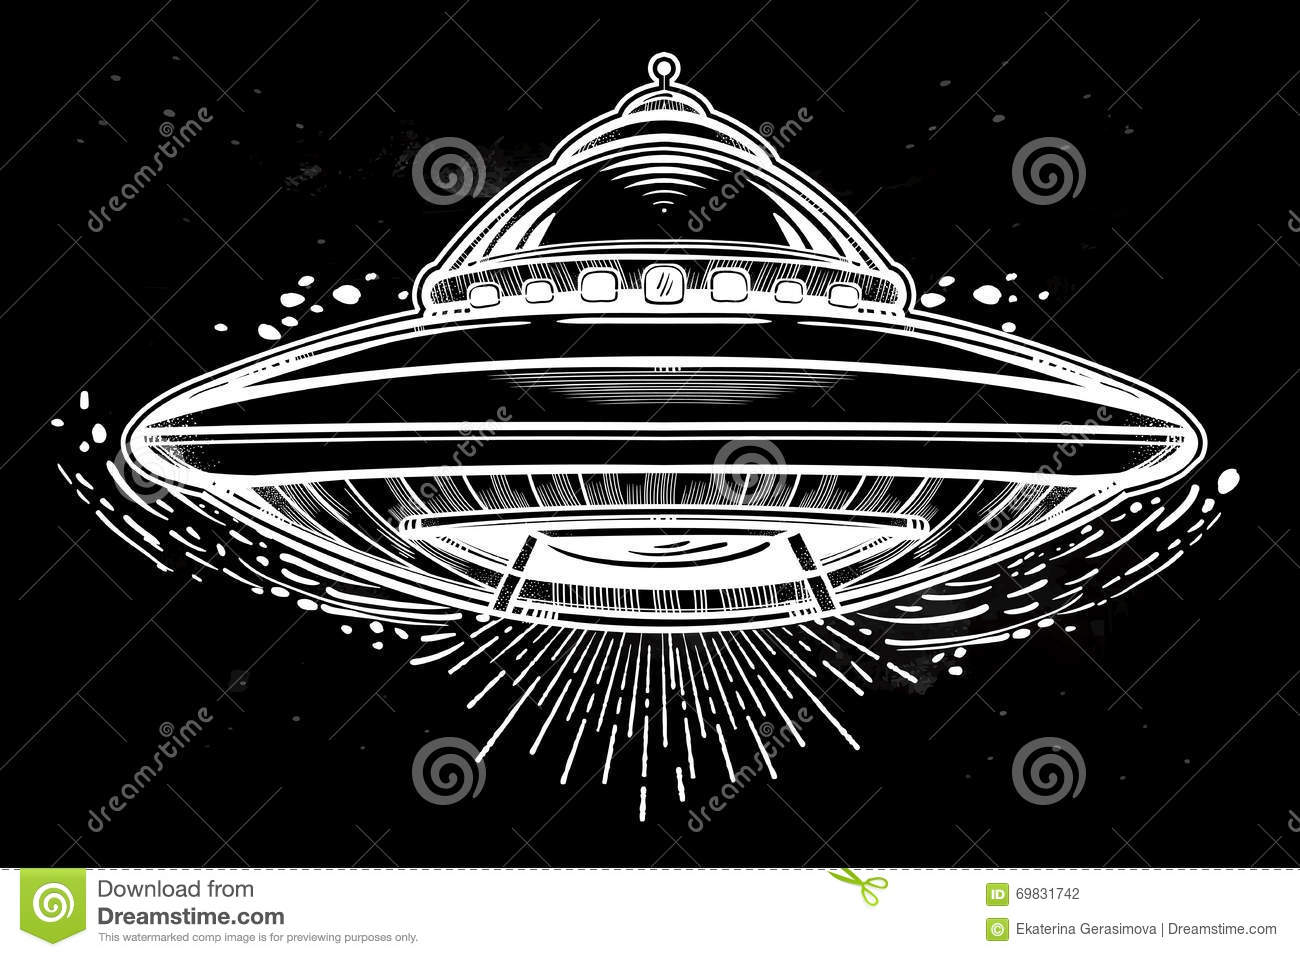 assessing ufo conspiracy theories Measuring individual differences in generic beliefs in conspiracy theories across cultures: conspiracy mentality questionnaire.